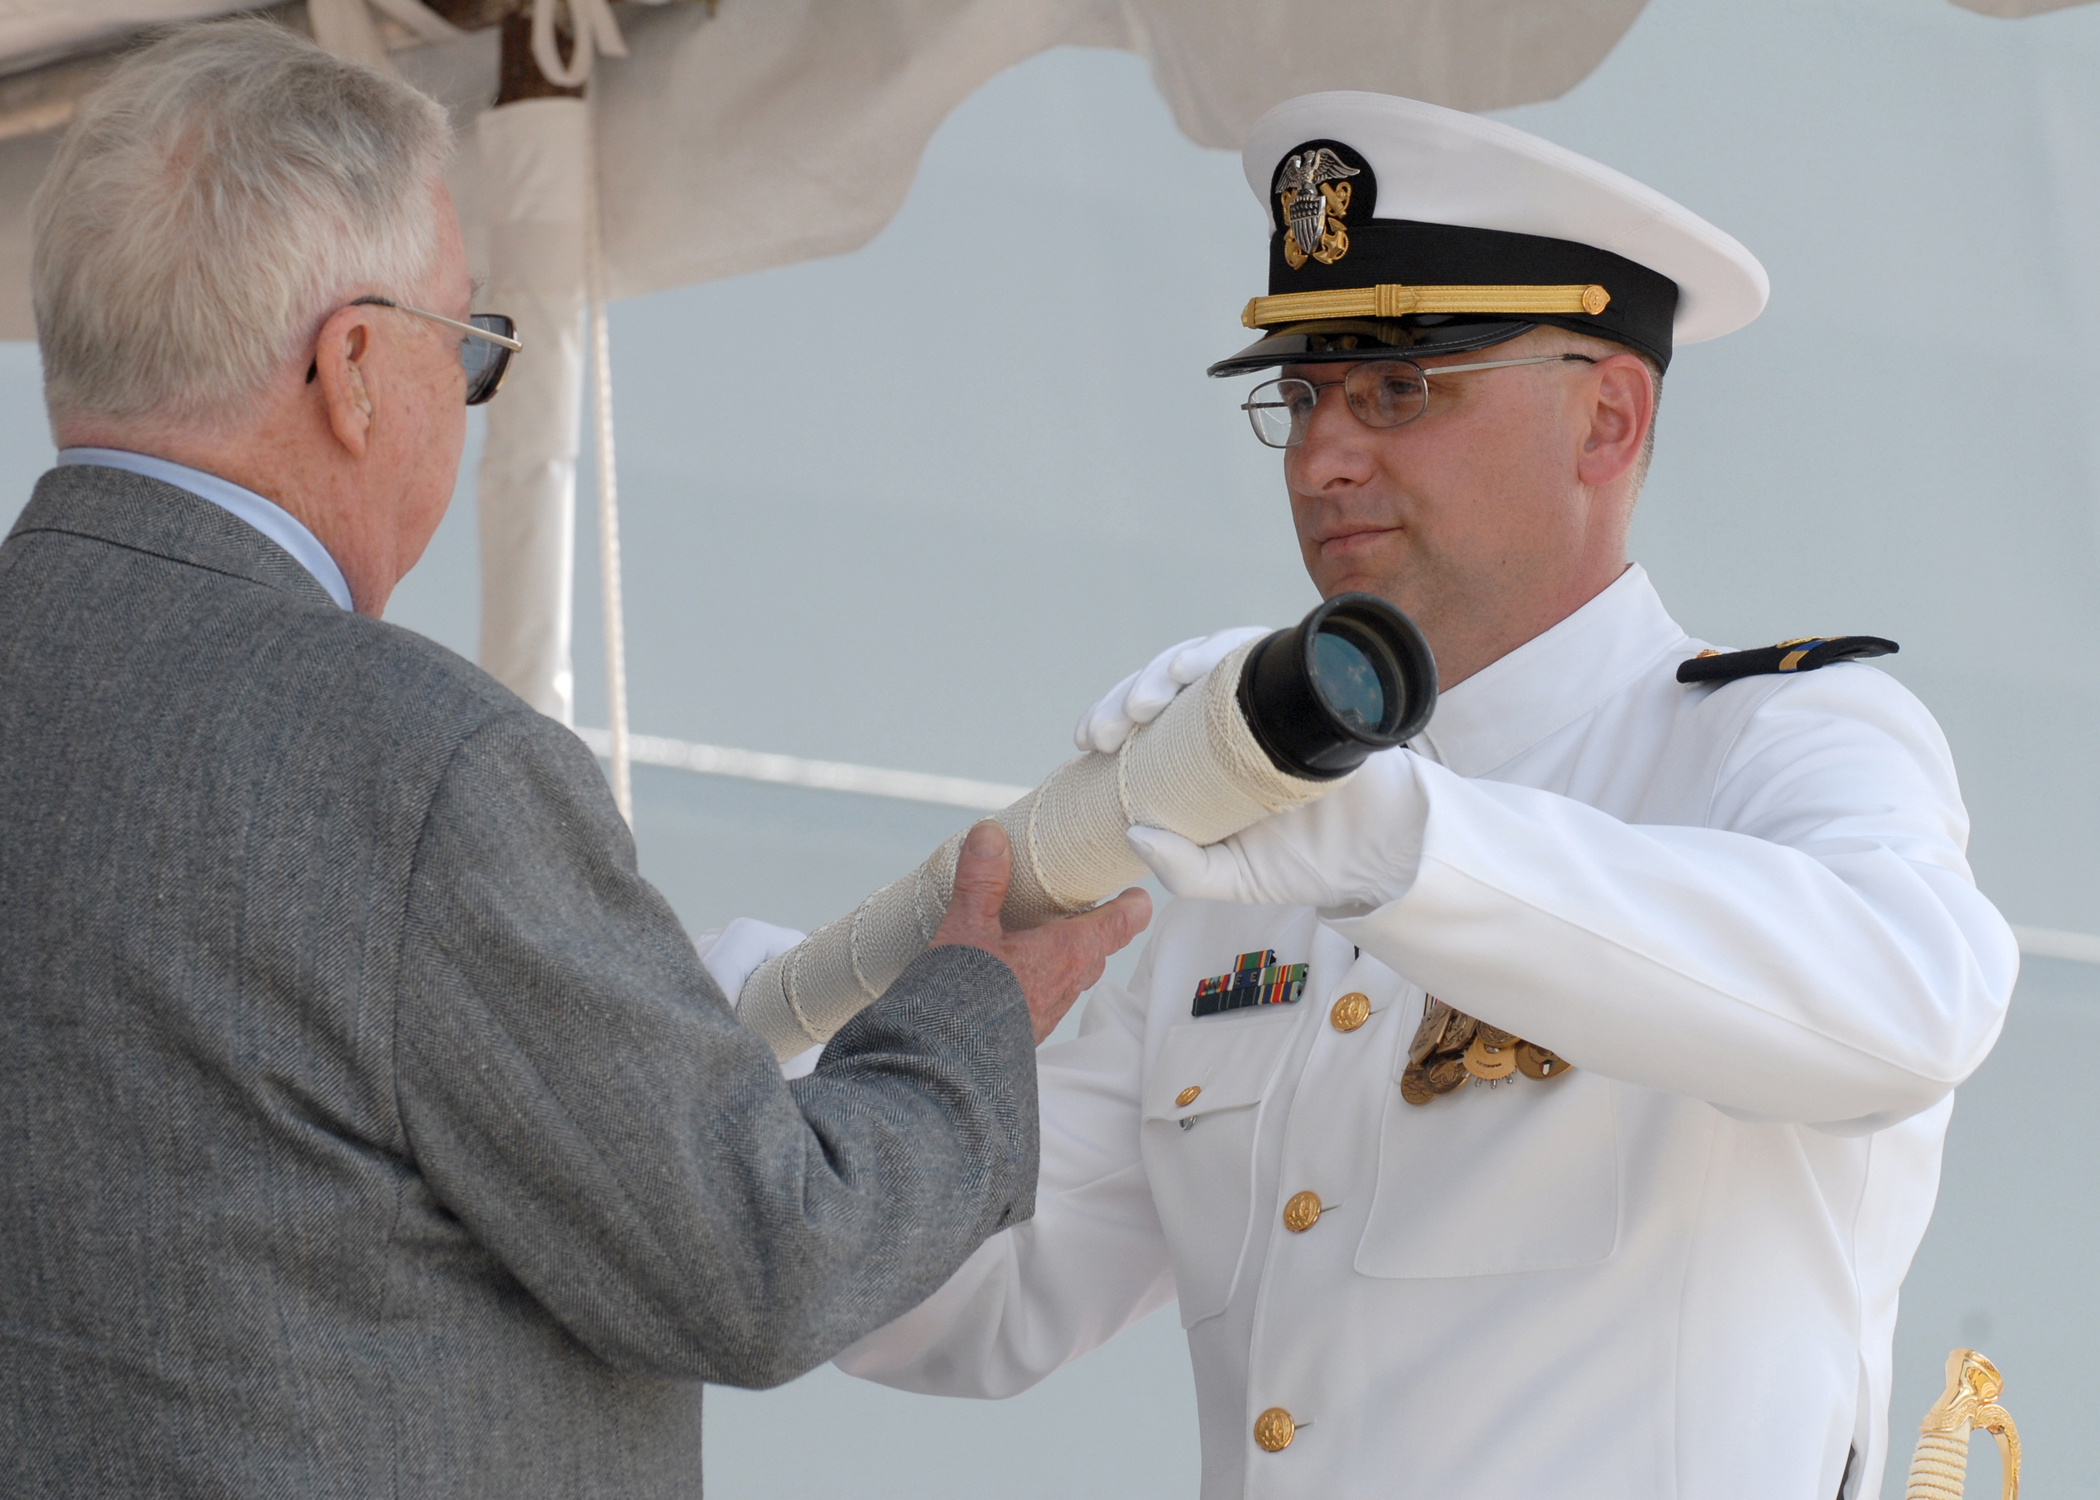 US Navy 070310-N-9909C-002 Retired Senior Chief Fire Control Technician Hank Wristen, passes the ship's long glass to Chief Warrant Officer Robert McLaughlin